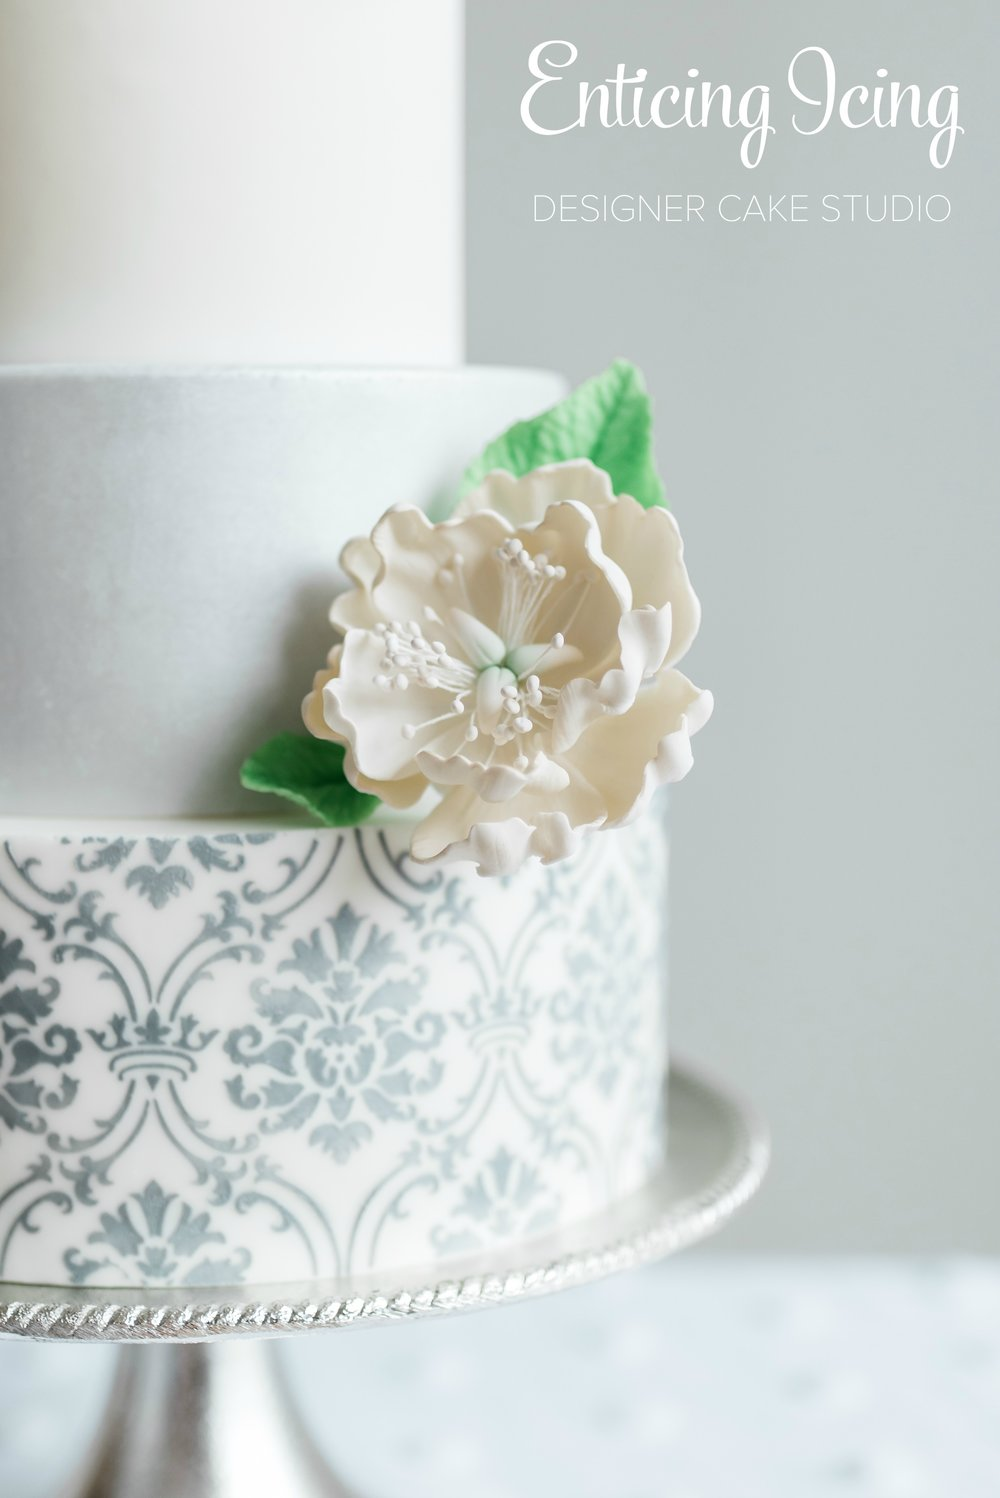 Enticing Icing | Designer Cake Studio on Feedspot - Rss Feed